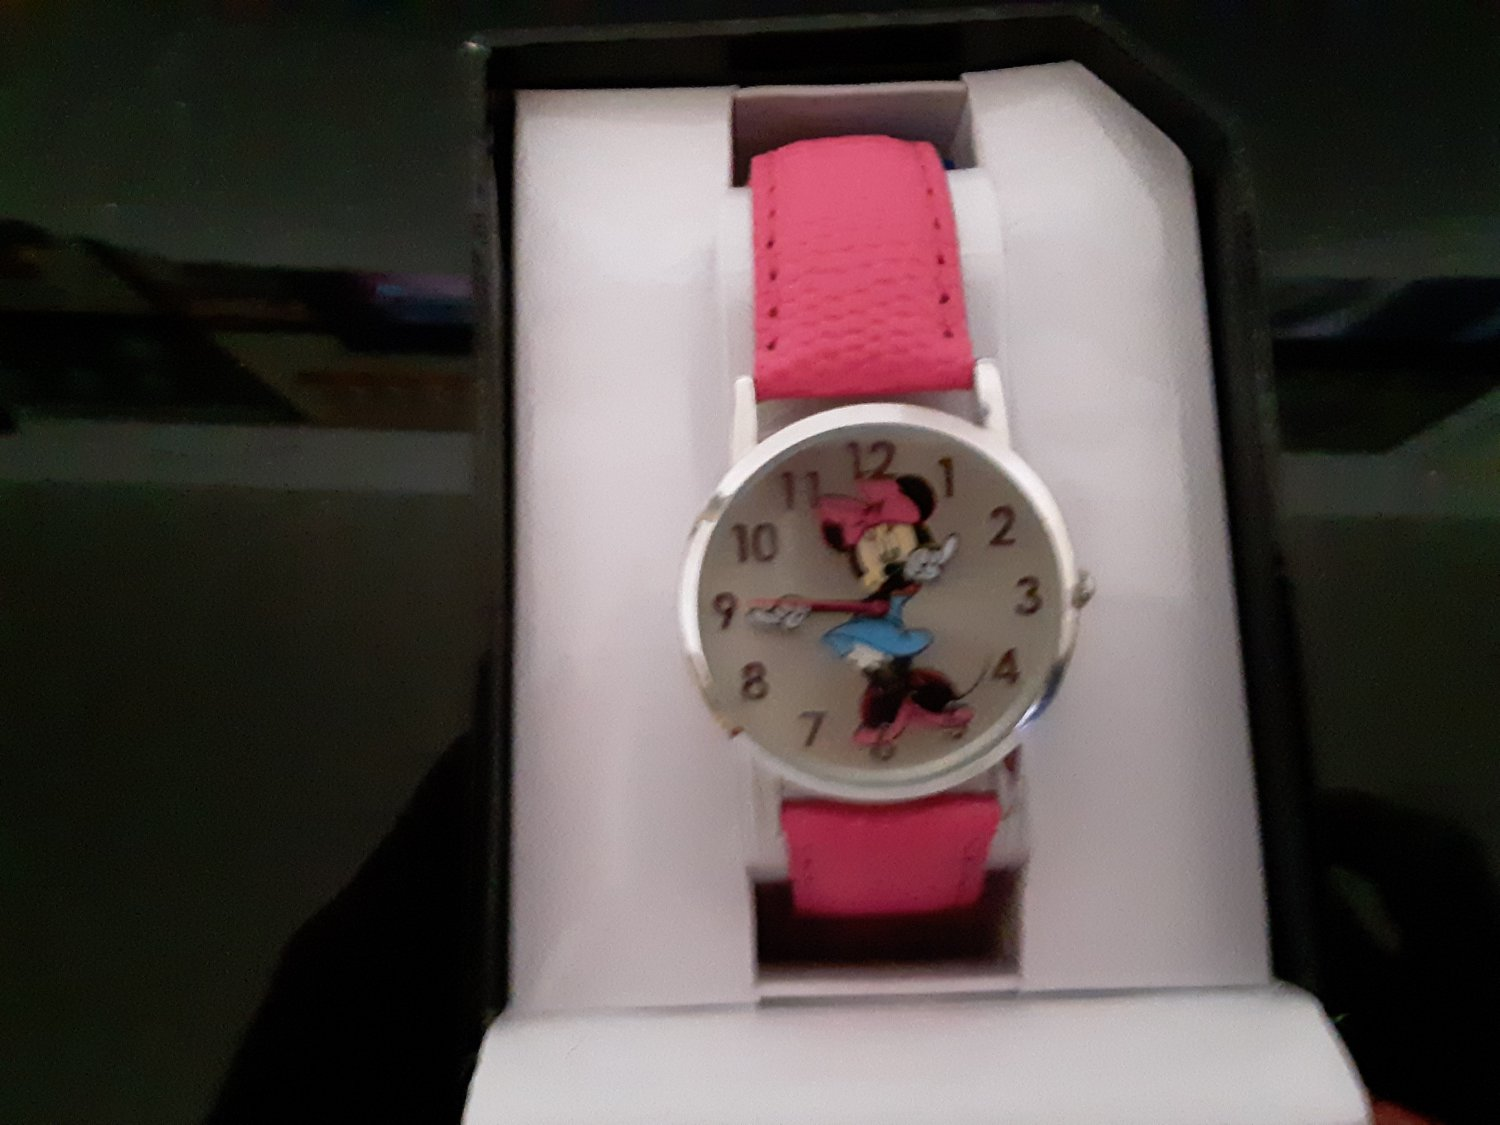 New Old Stock - Walt Disney - Minnie Mouse Watch - (1741)